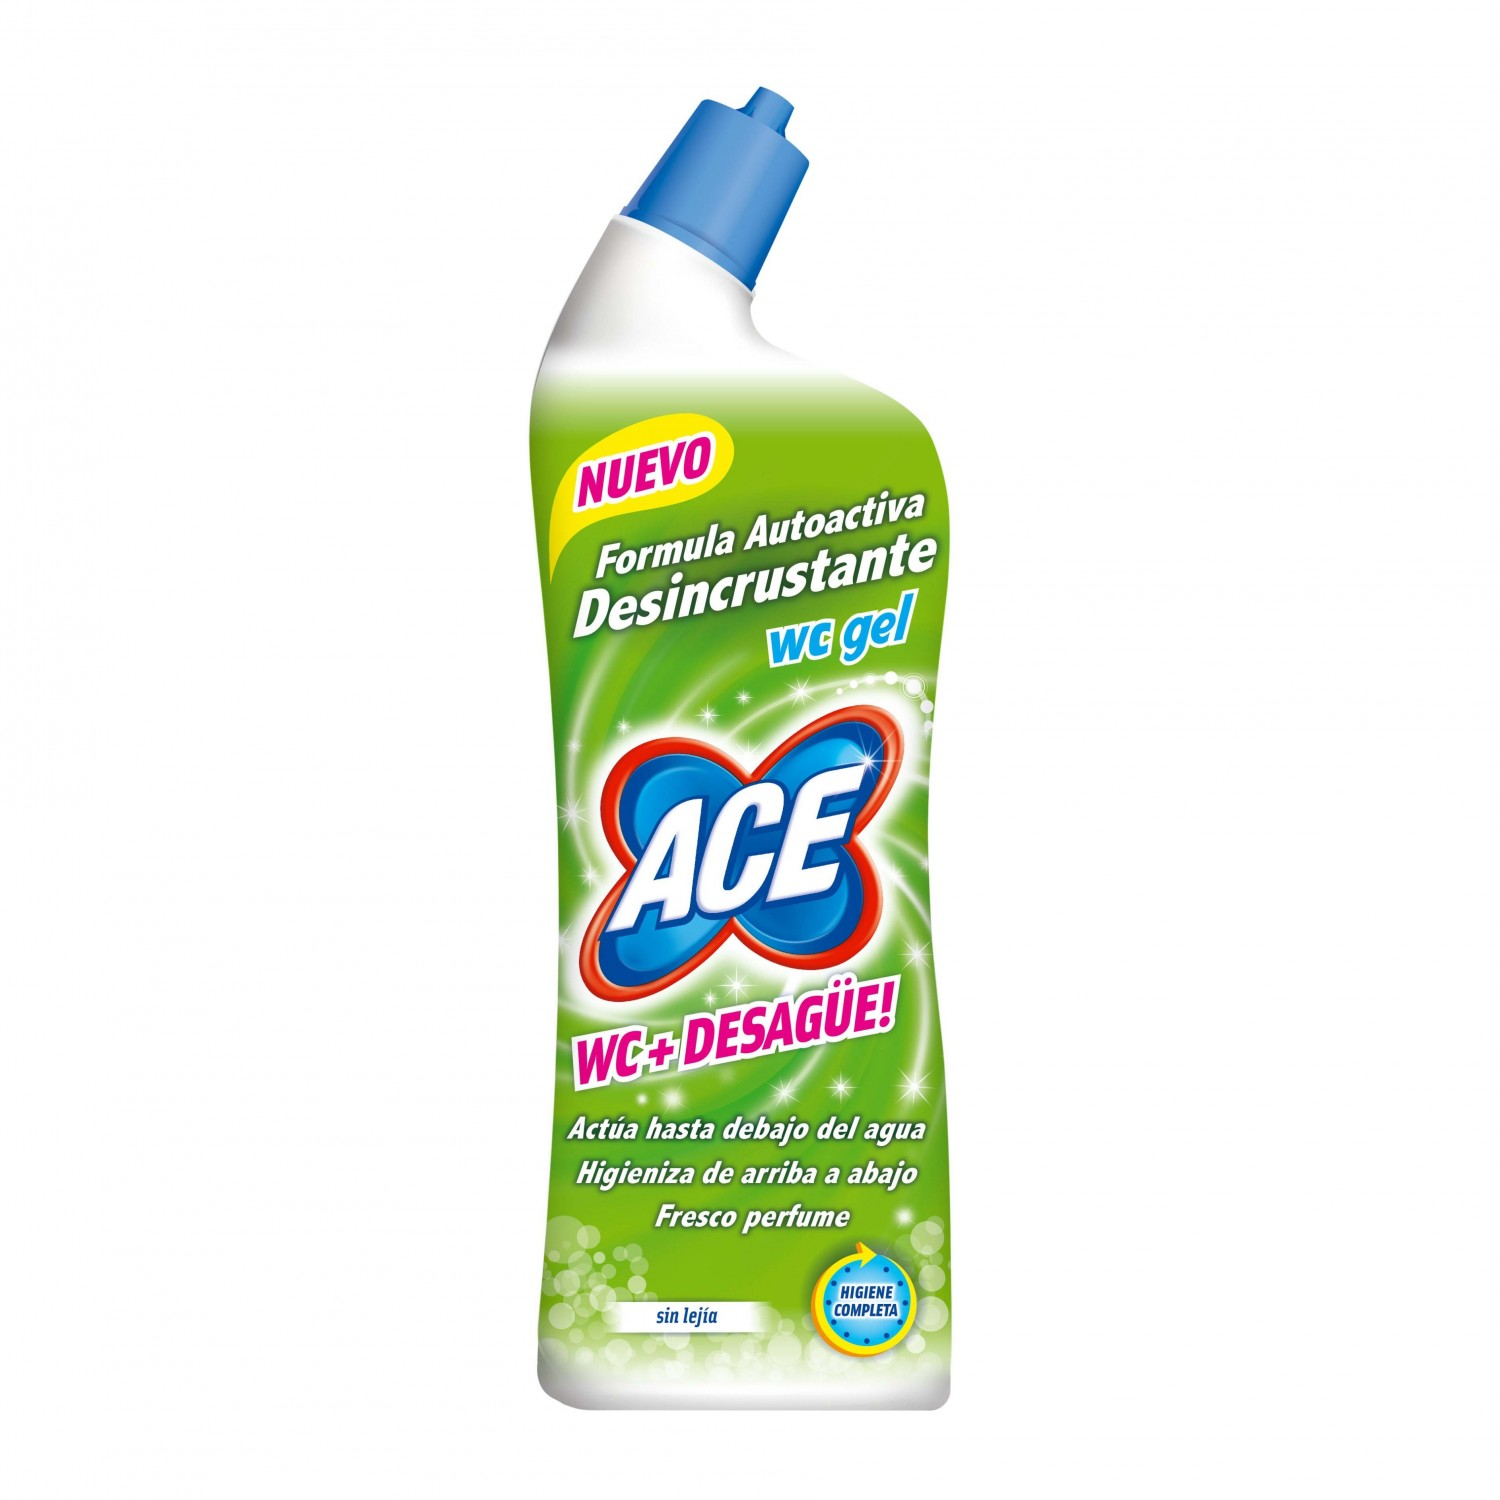 Ace desinfectante wc gel dessincrustante sin lejia de 70cl. en botella